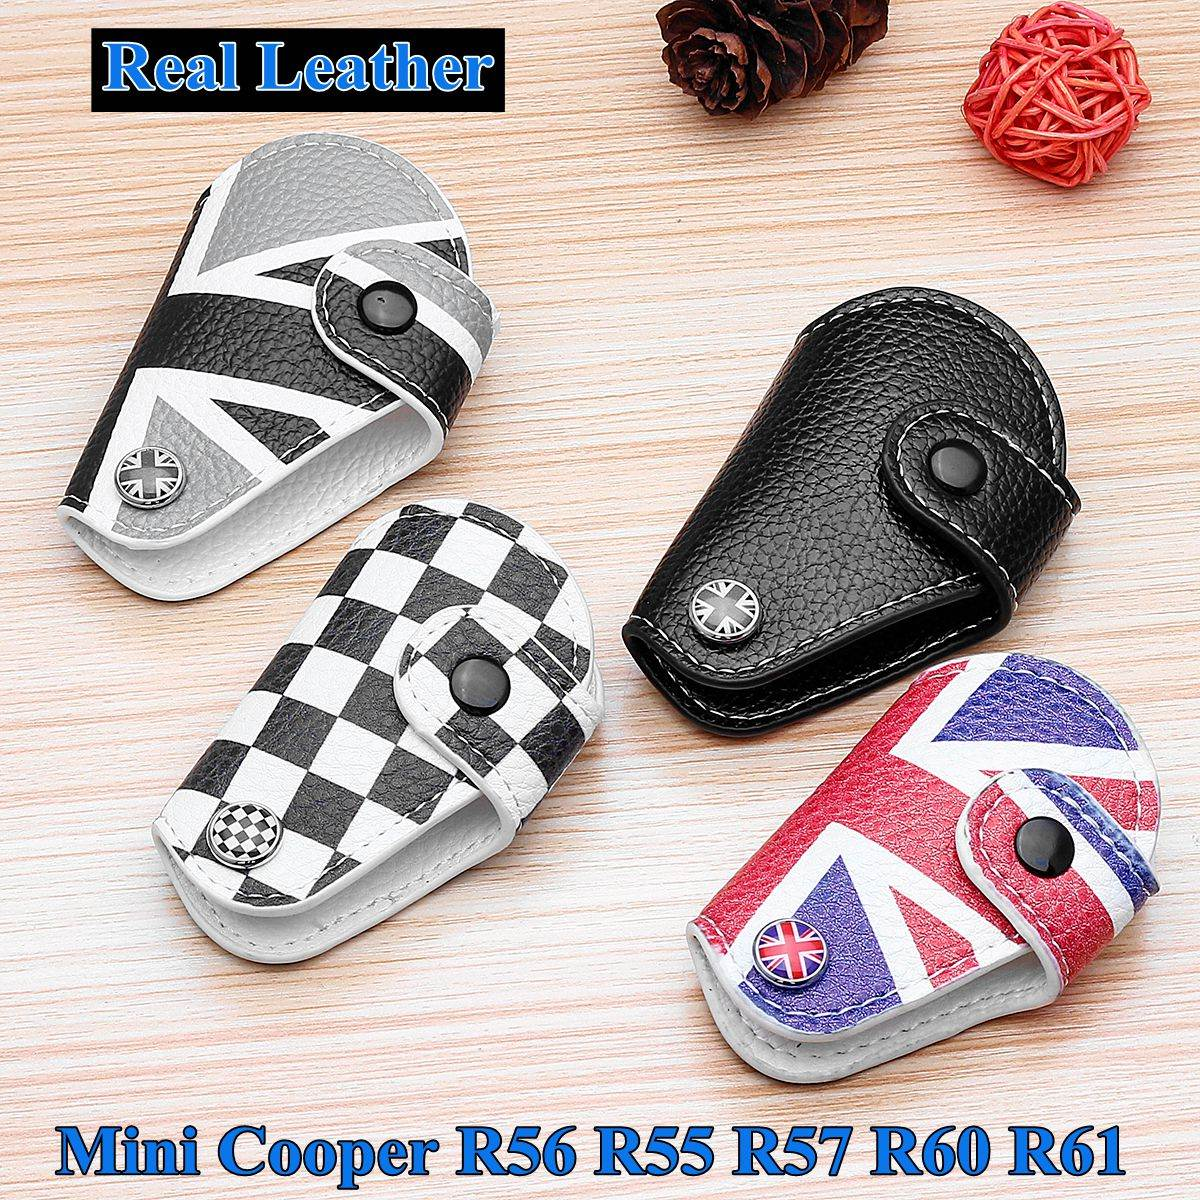 for Mini Cooper R56 R55 R57 R60 R61 1 Pcs 4 Colors Leather Union Jack Fob Car Key Case Bag Cover Holder Car Styling Accessoriesfor Mini Cooper R56 R55 R57 R60 R61 1 Pcs 4 Colors Leather Union Jack Fob Car Key Case Bag Cover Holder Car Styling Accessories